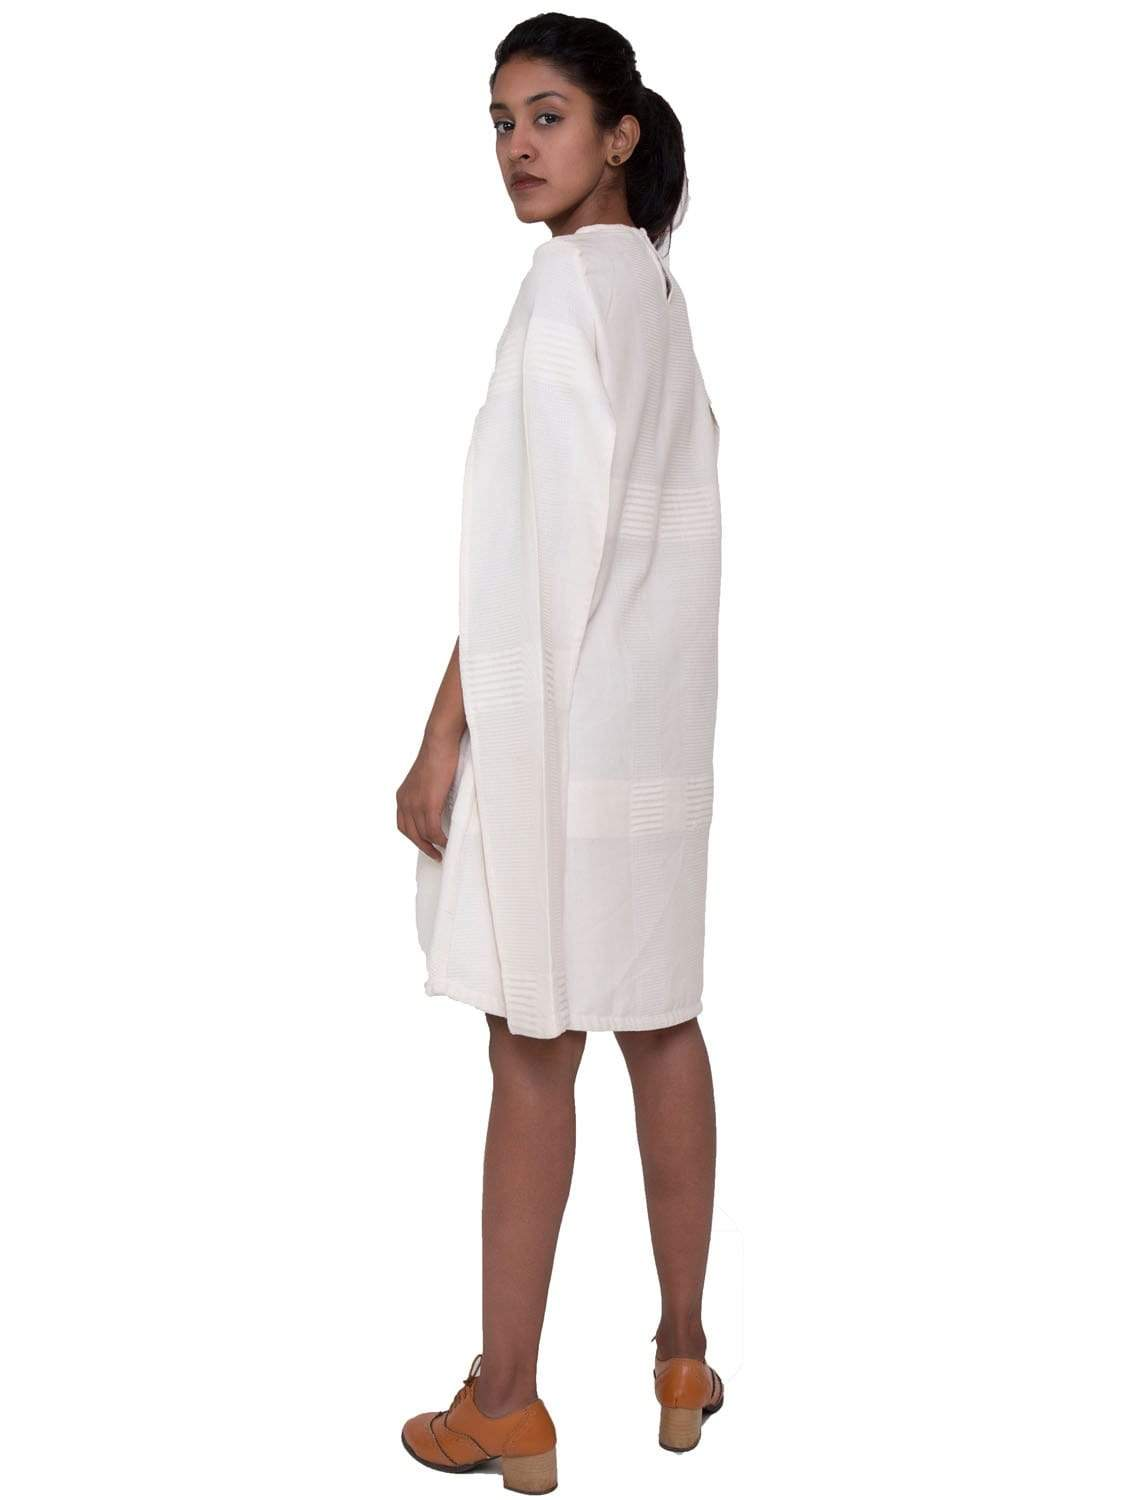 White PikaLove Organic Cotton Cape Sleeved Dress UNC-MB-WCS-011